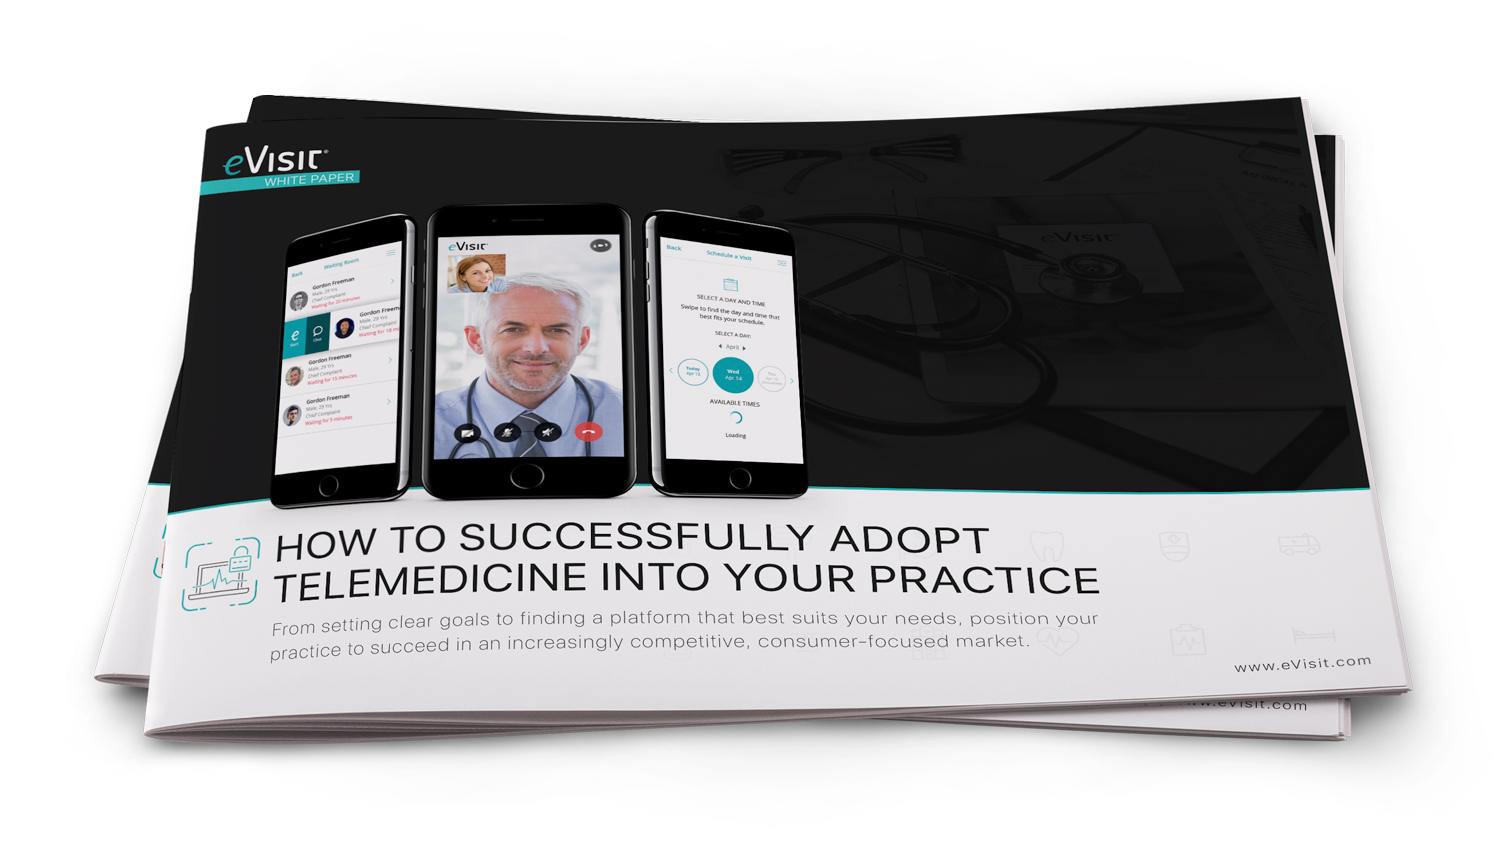 How-To-Successfully-Adopt-Telemedicine-1.png